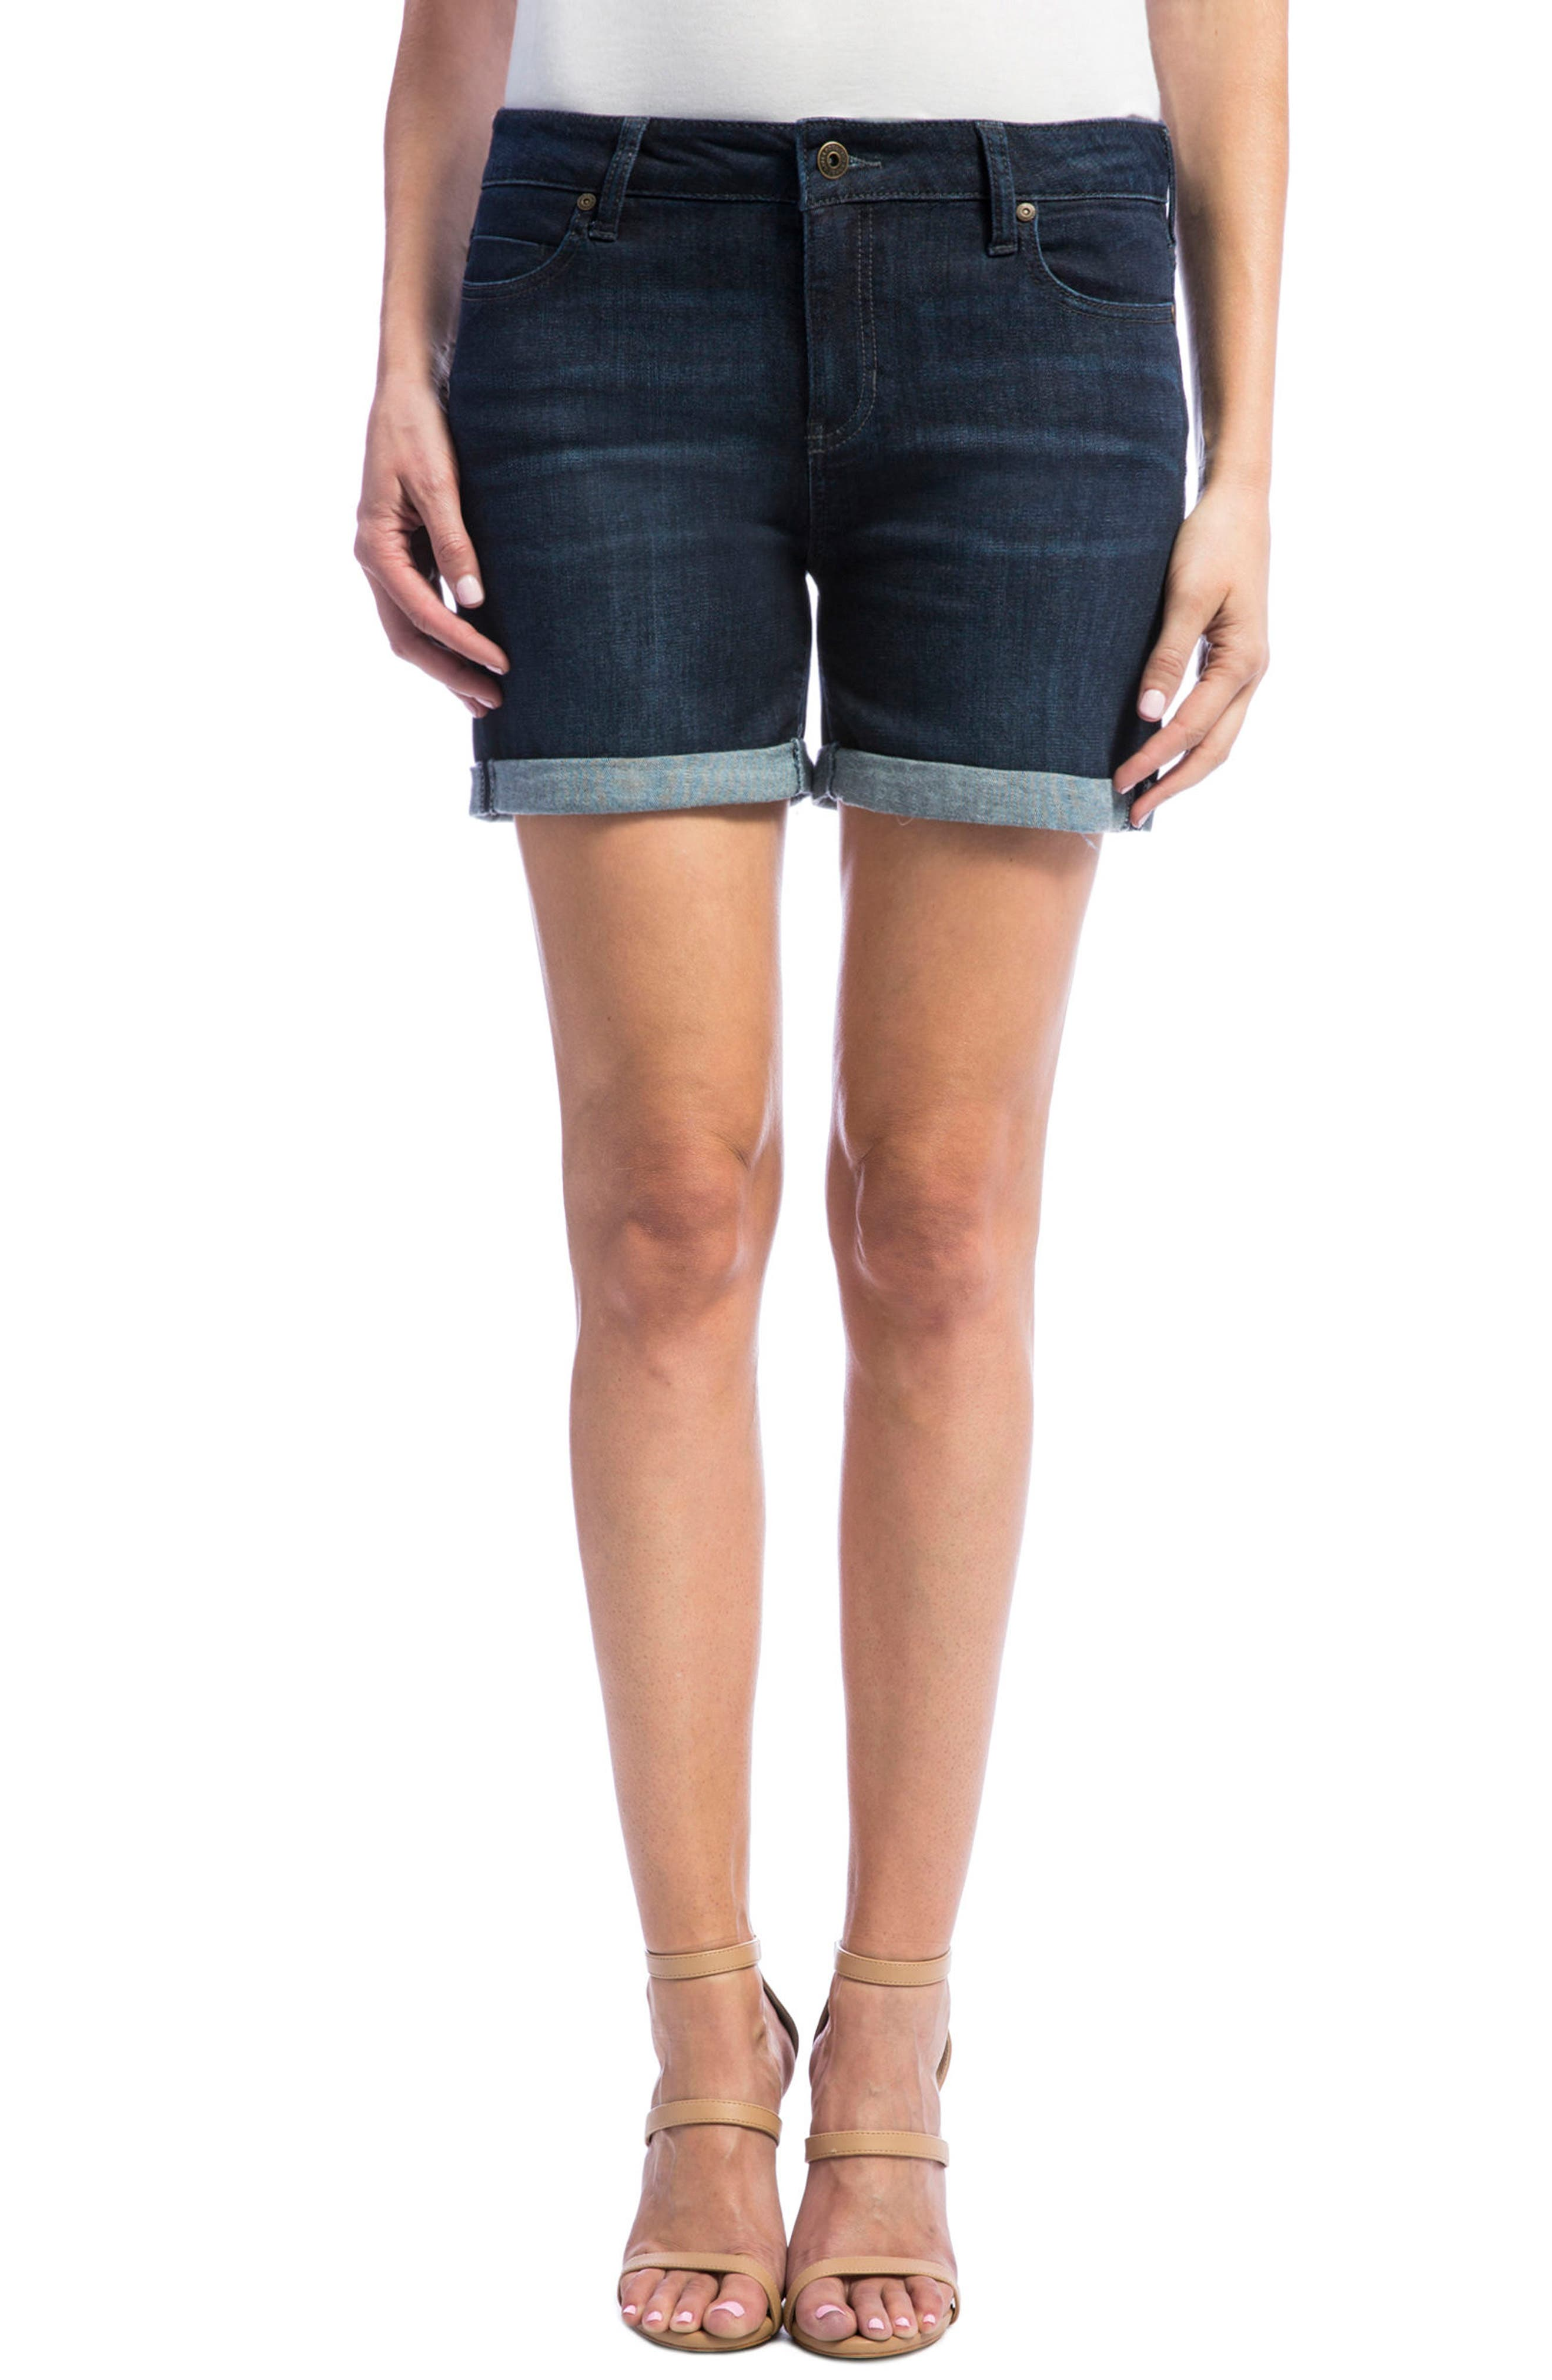 Liverpool Jeans Company 'Vickie' Denim Shorts